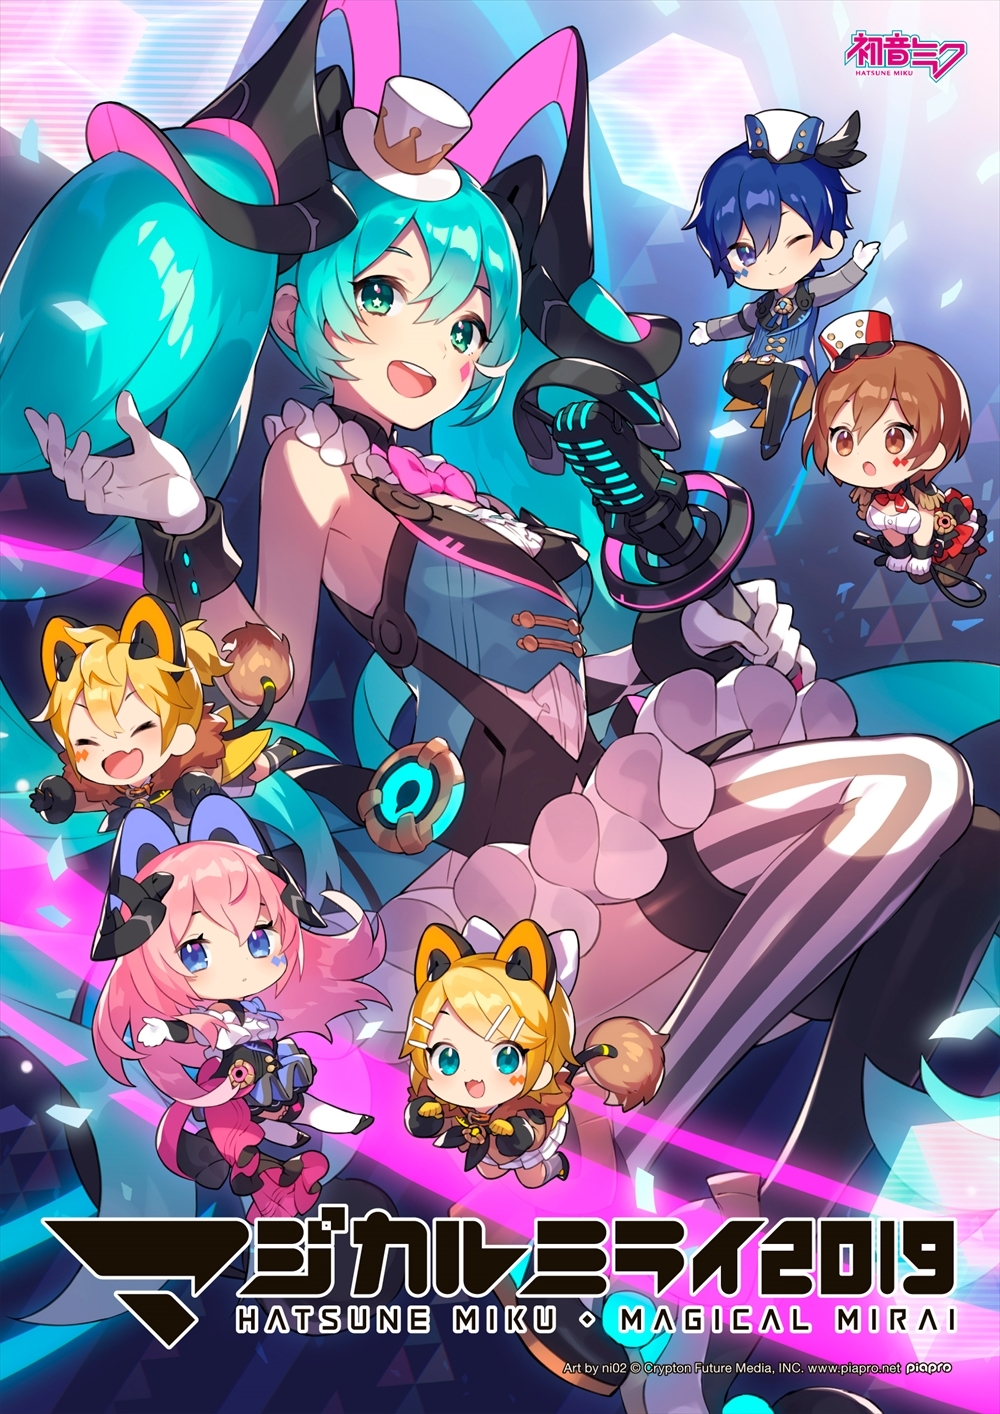 『マジカルミライ 2019』ジャケット (C) Crypton Future Media, INC. www.piapro.net